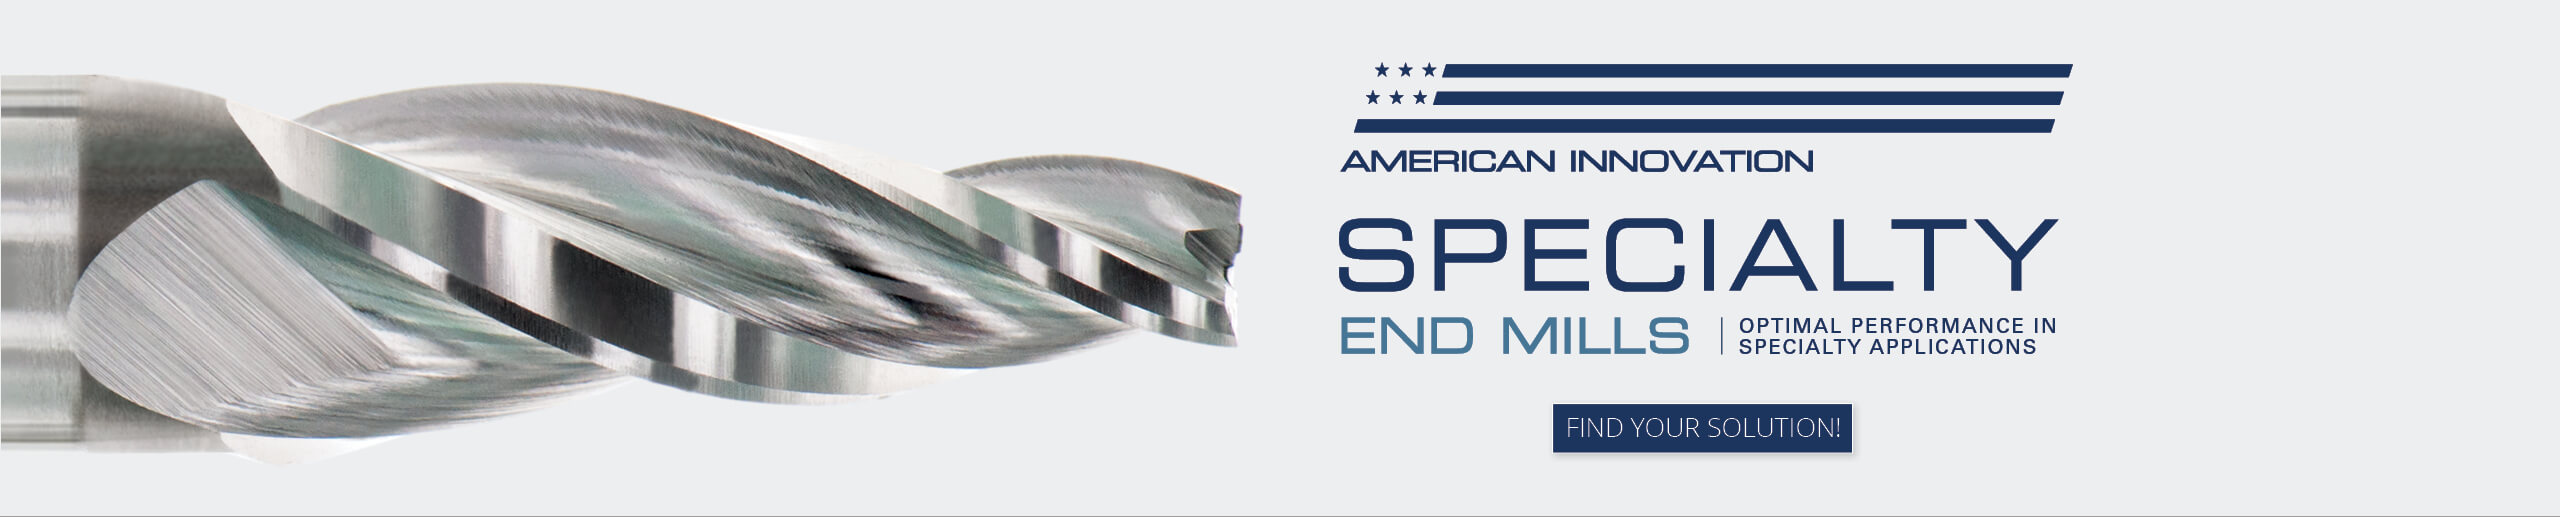 Conical Cutting Tools Specialty End Mills Banner